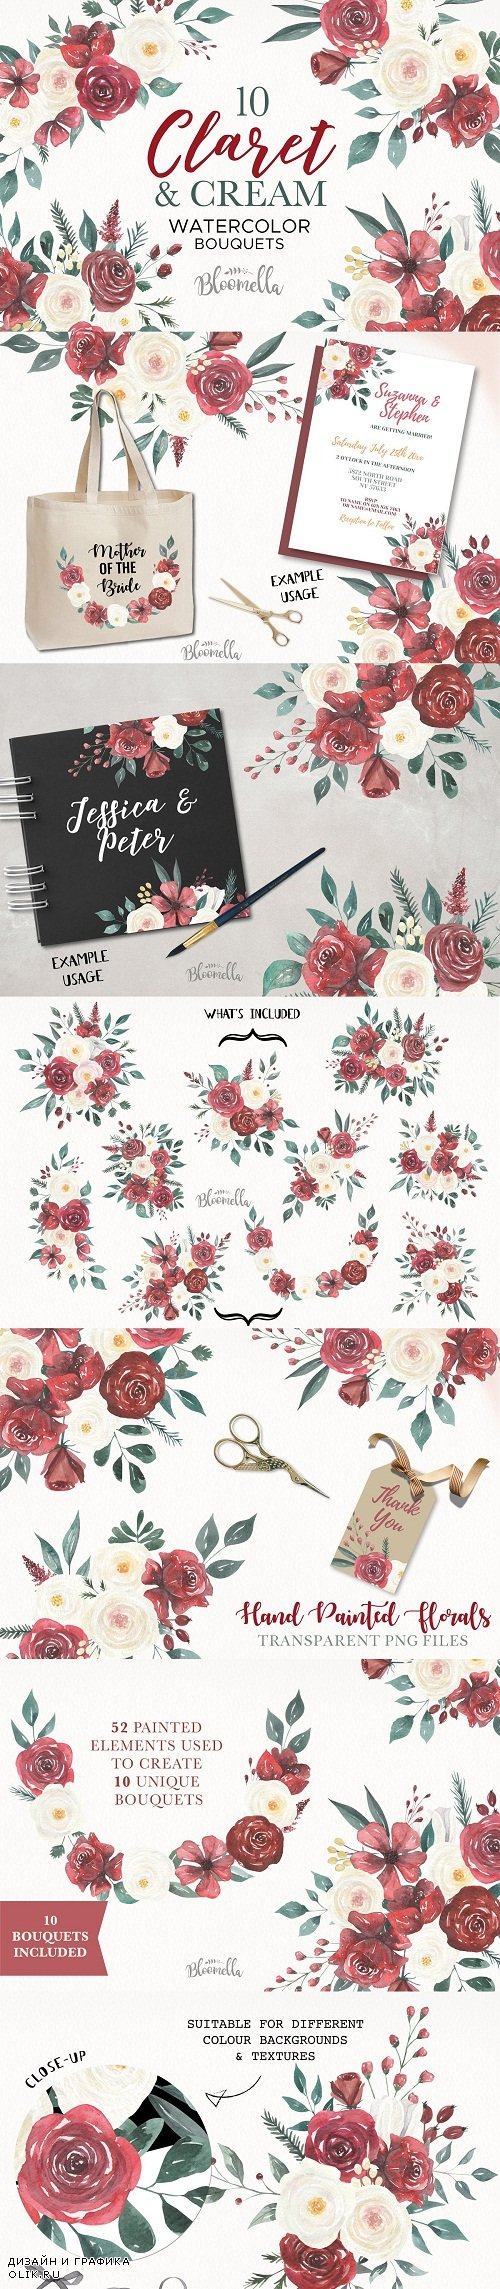 Watercolour Claret Deep Red Flowers - 3537698